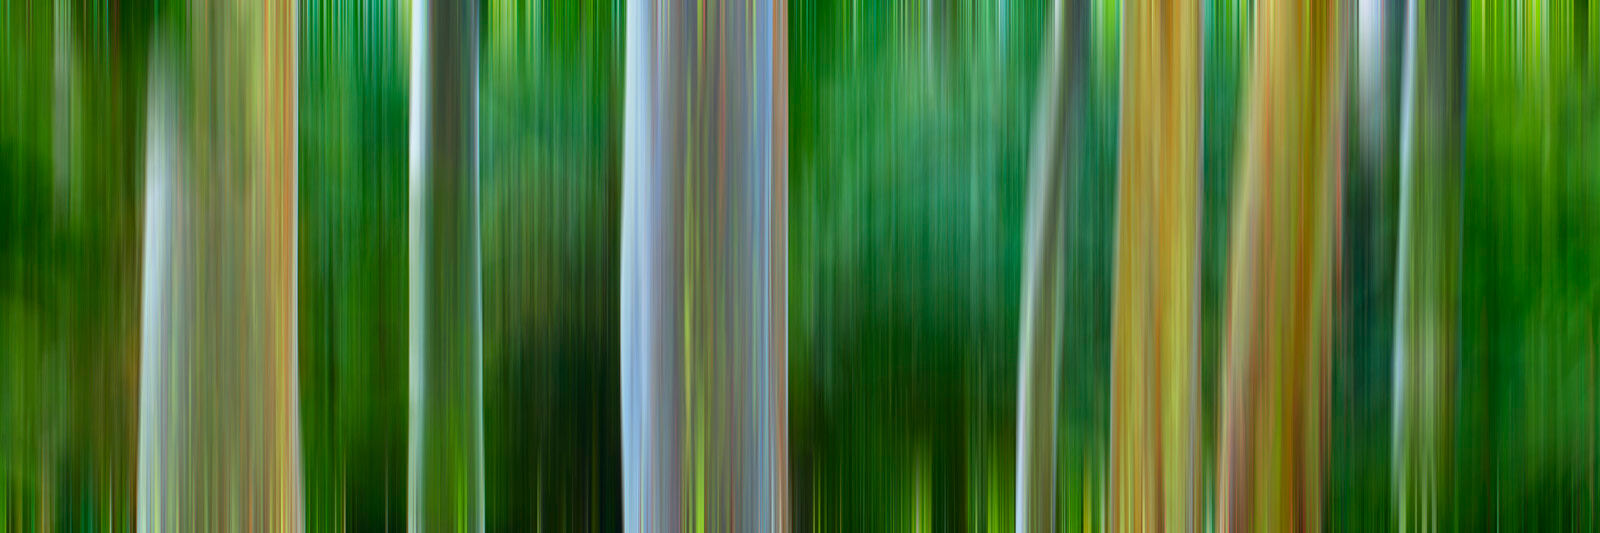 rainbow eucalyptus, trees, maui, hawaii, abstract, green, hana, photo